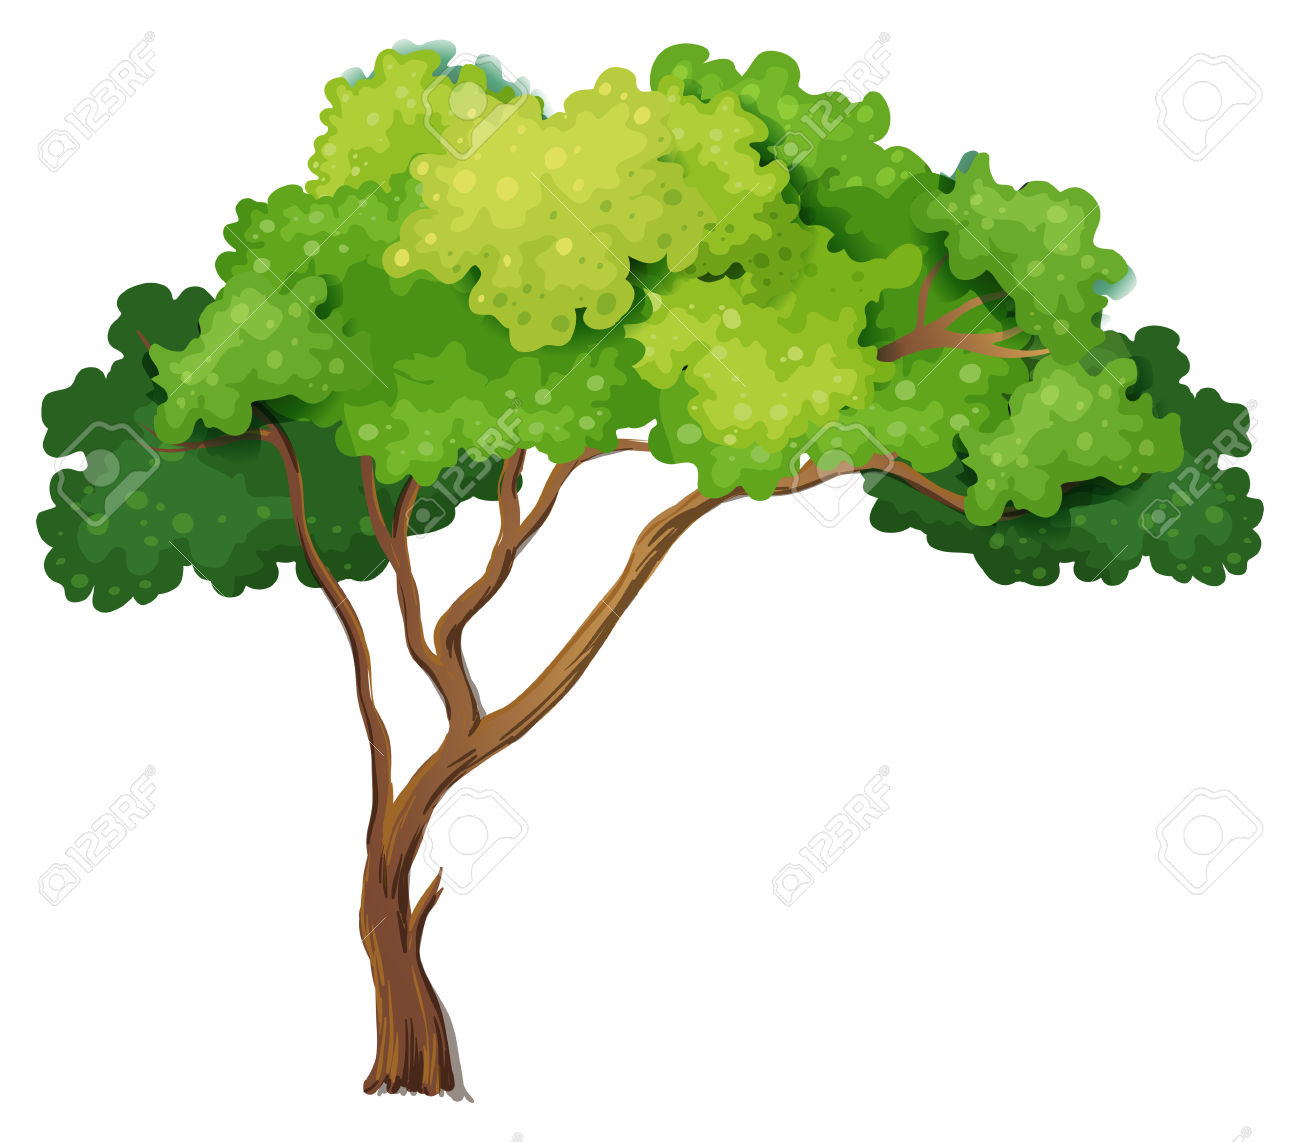 Illustration Of A Close Up Tree Royalty Free Cliparts, Vectors.